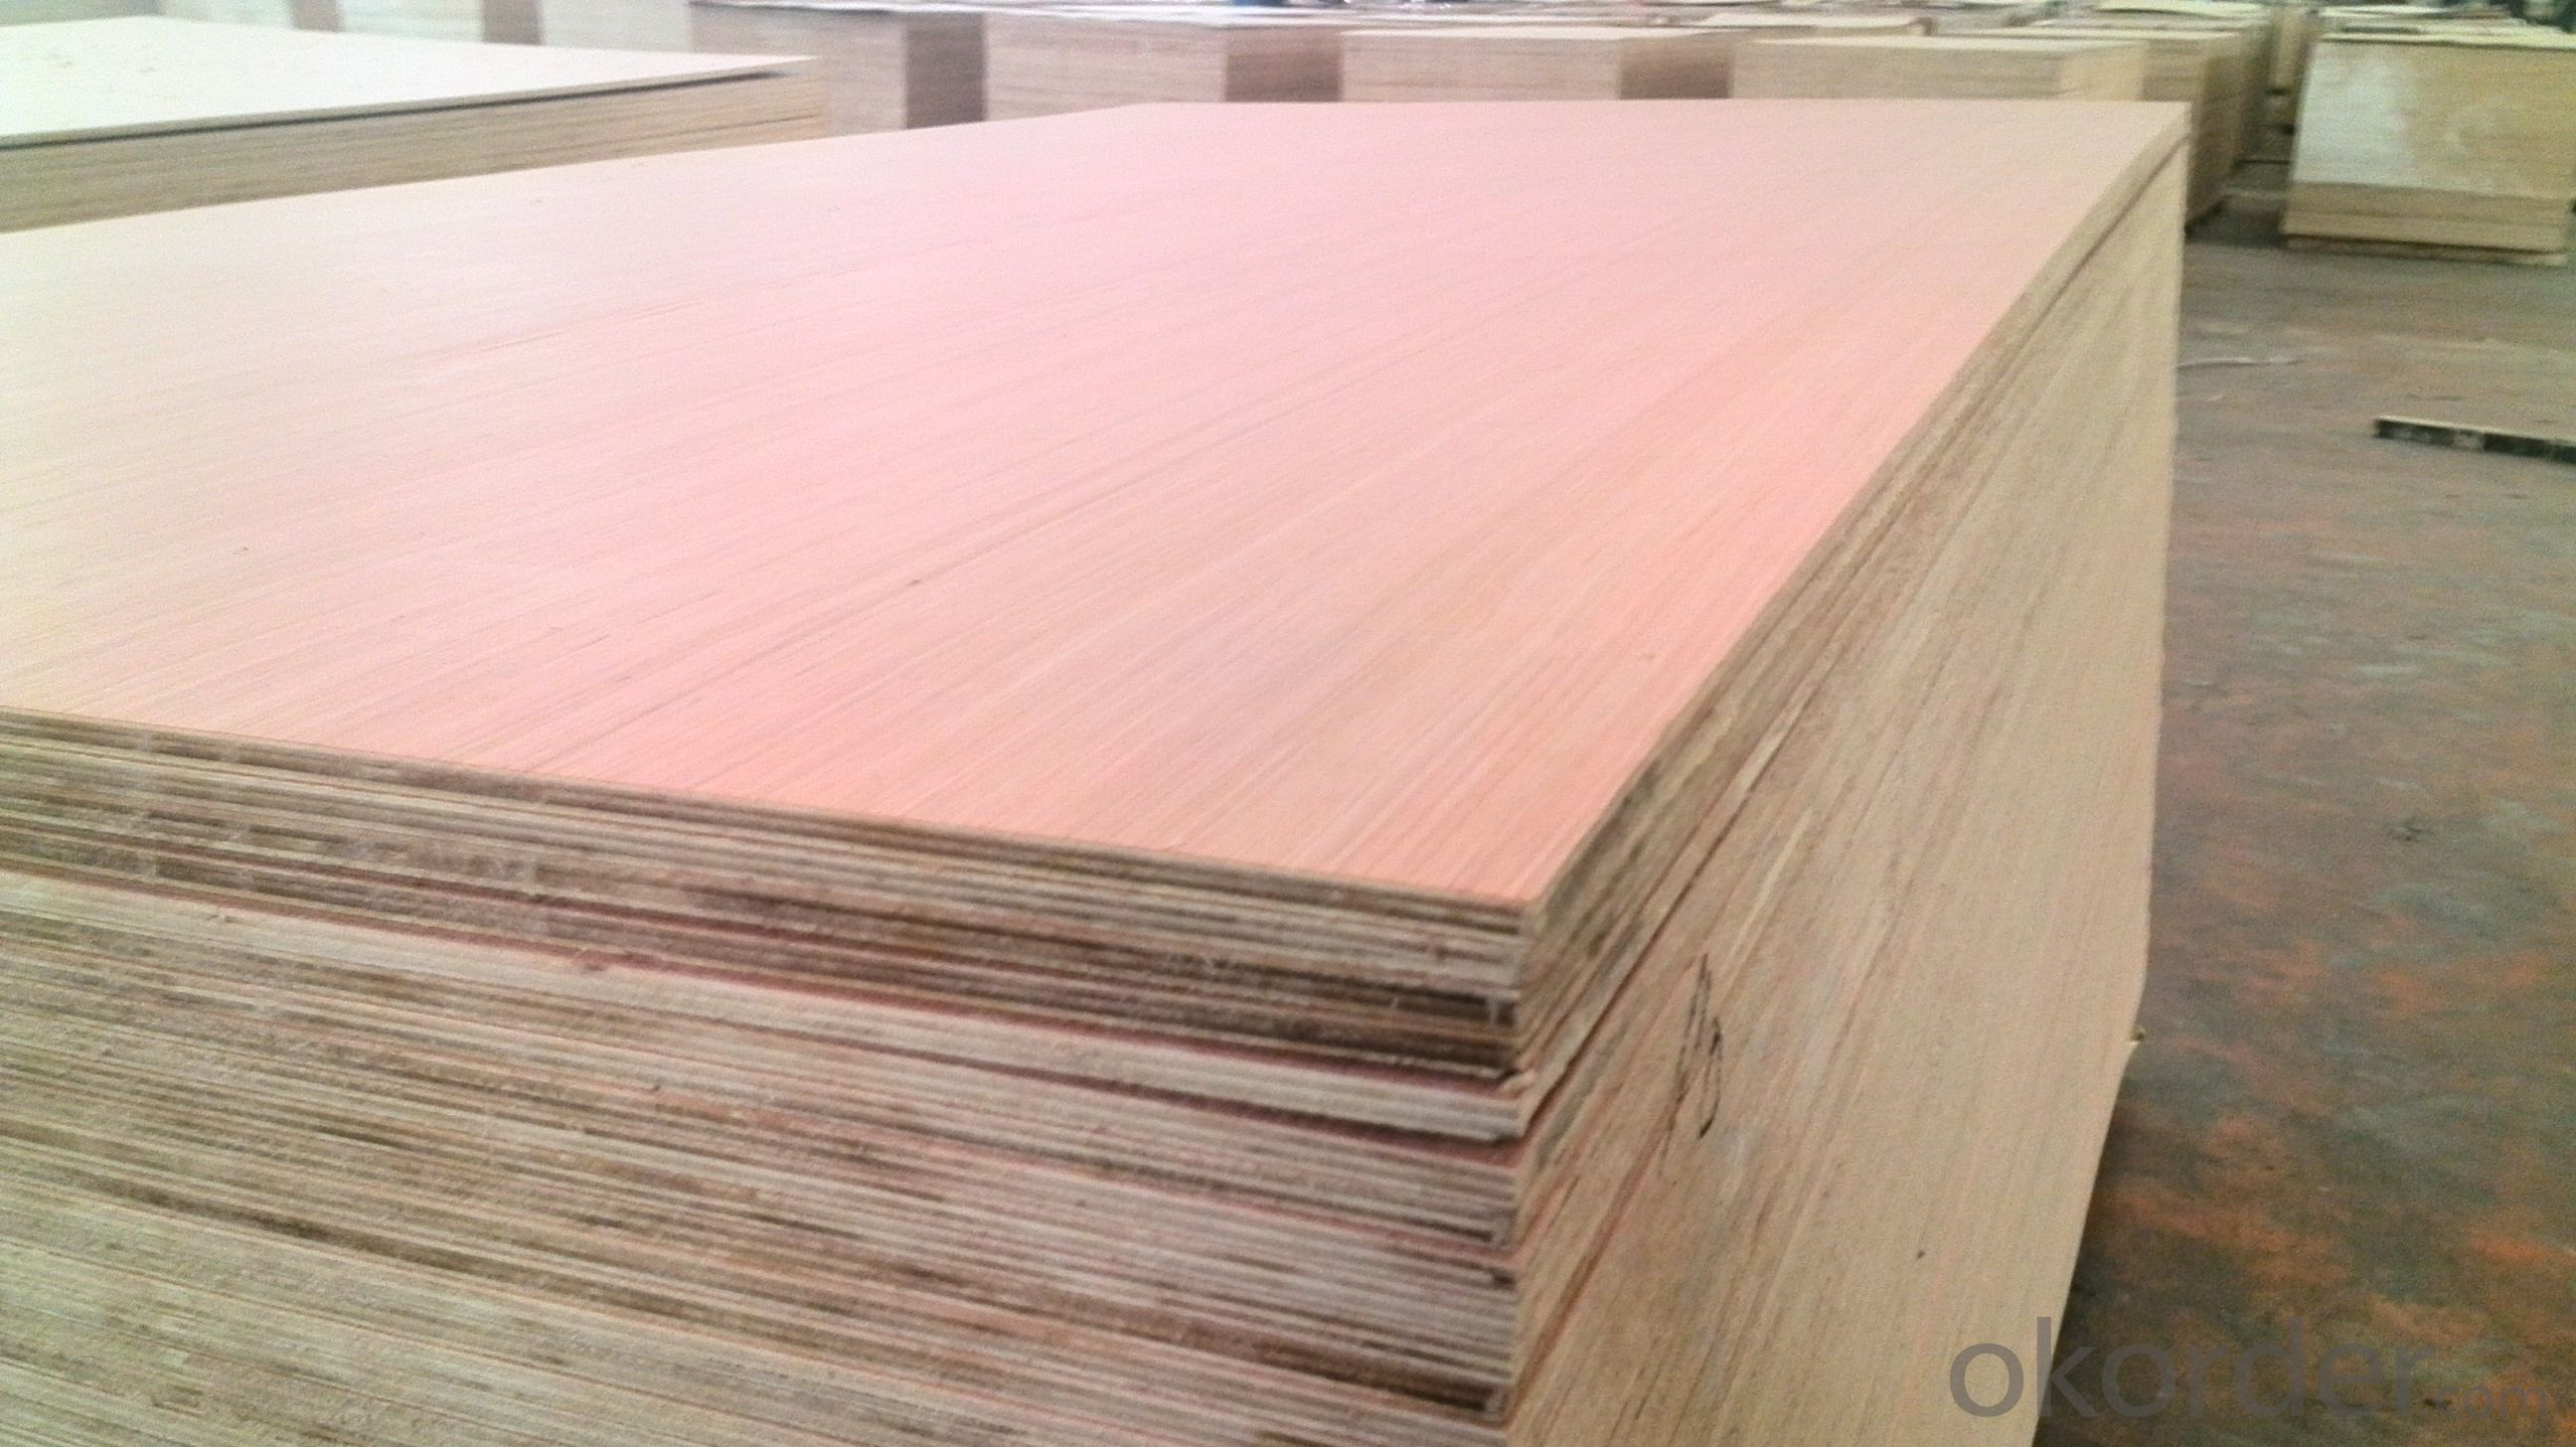 Weight Of Lumber Plywood ~ Buy pla pa wood veneer face plywood thick board price size